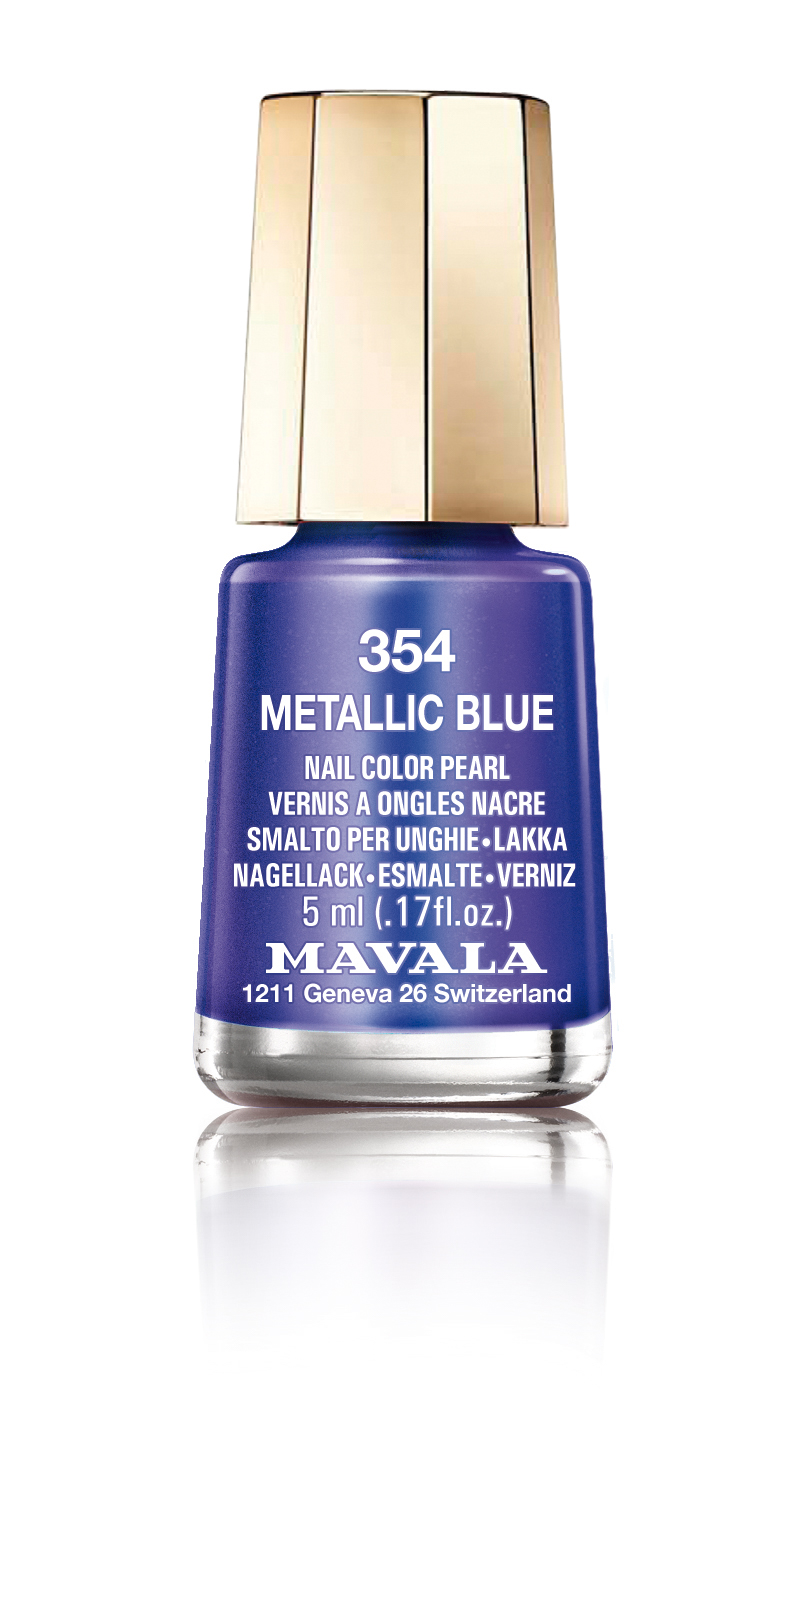 354 METALLIC BLUE